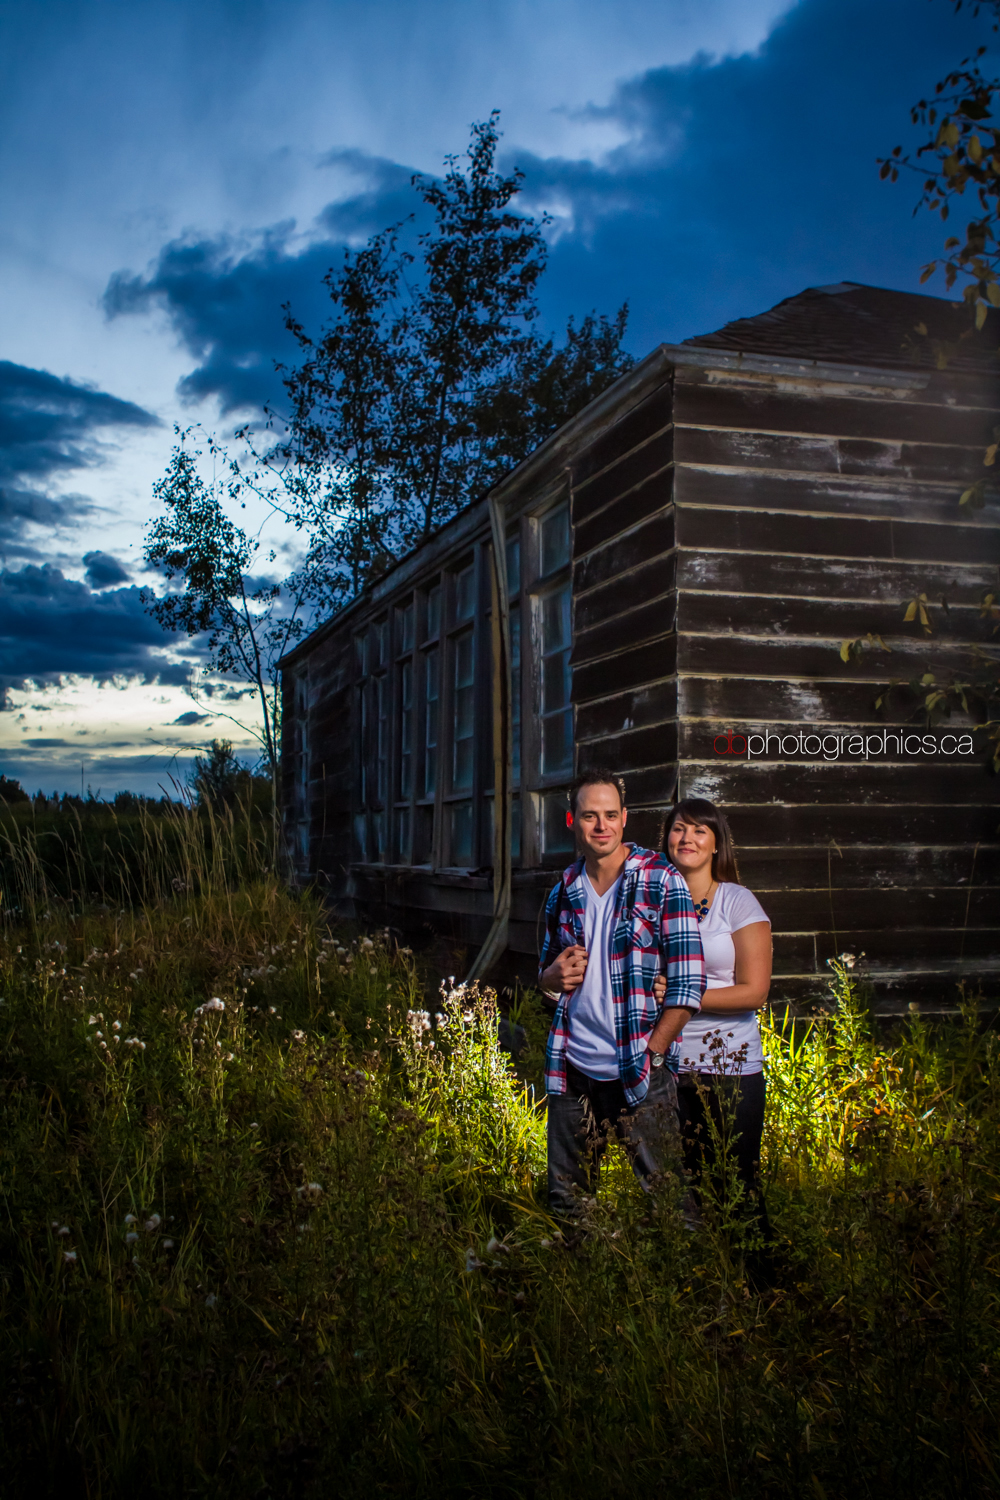 Rob & Alicia Engagement Shoot - 20130922 - 0070.jpg